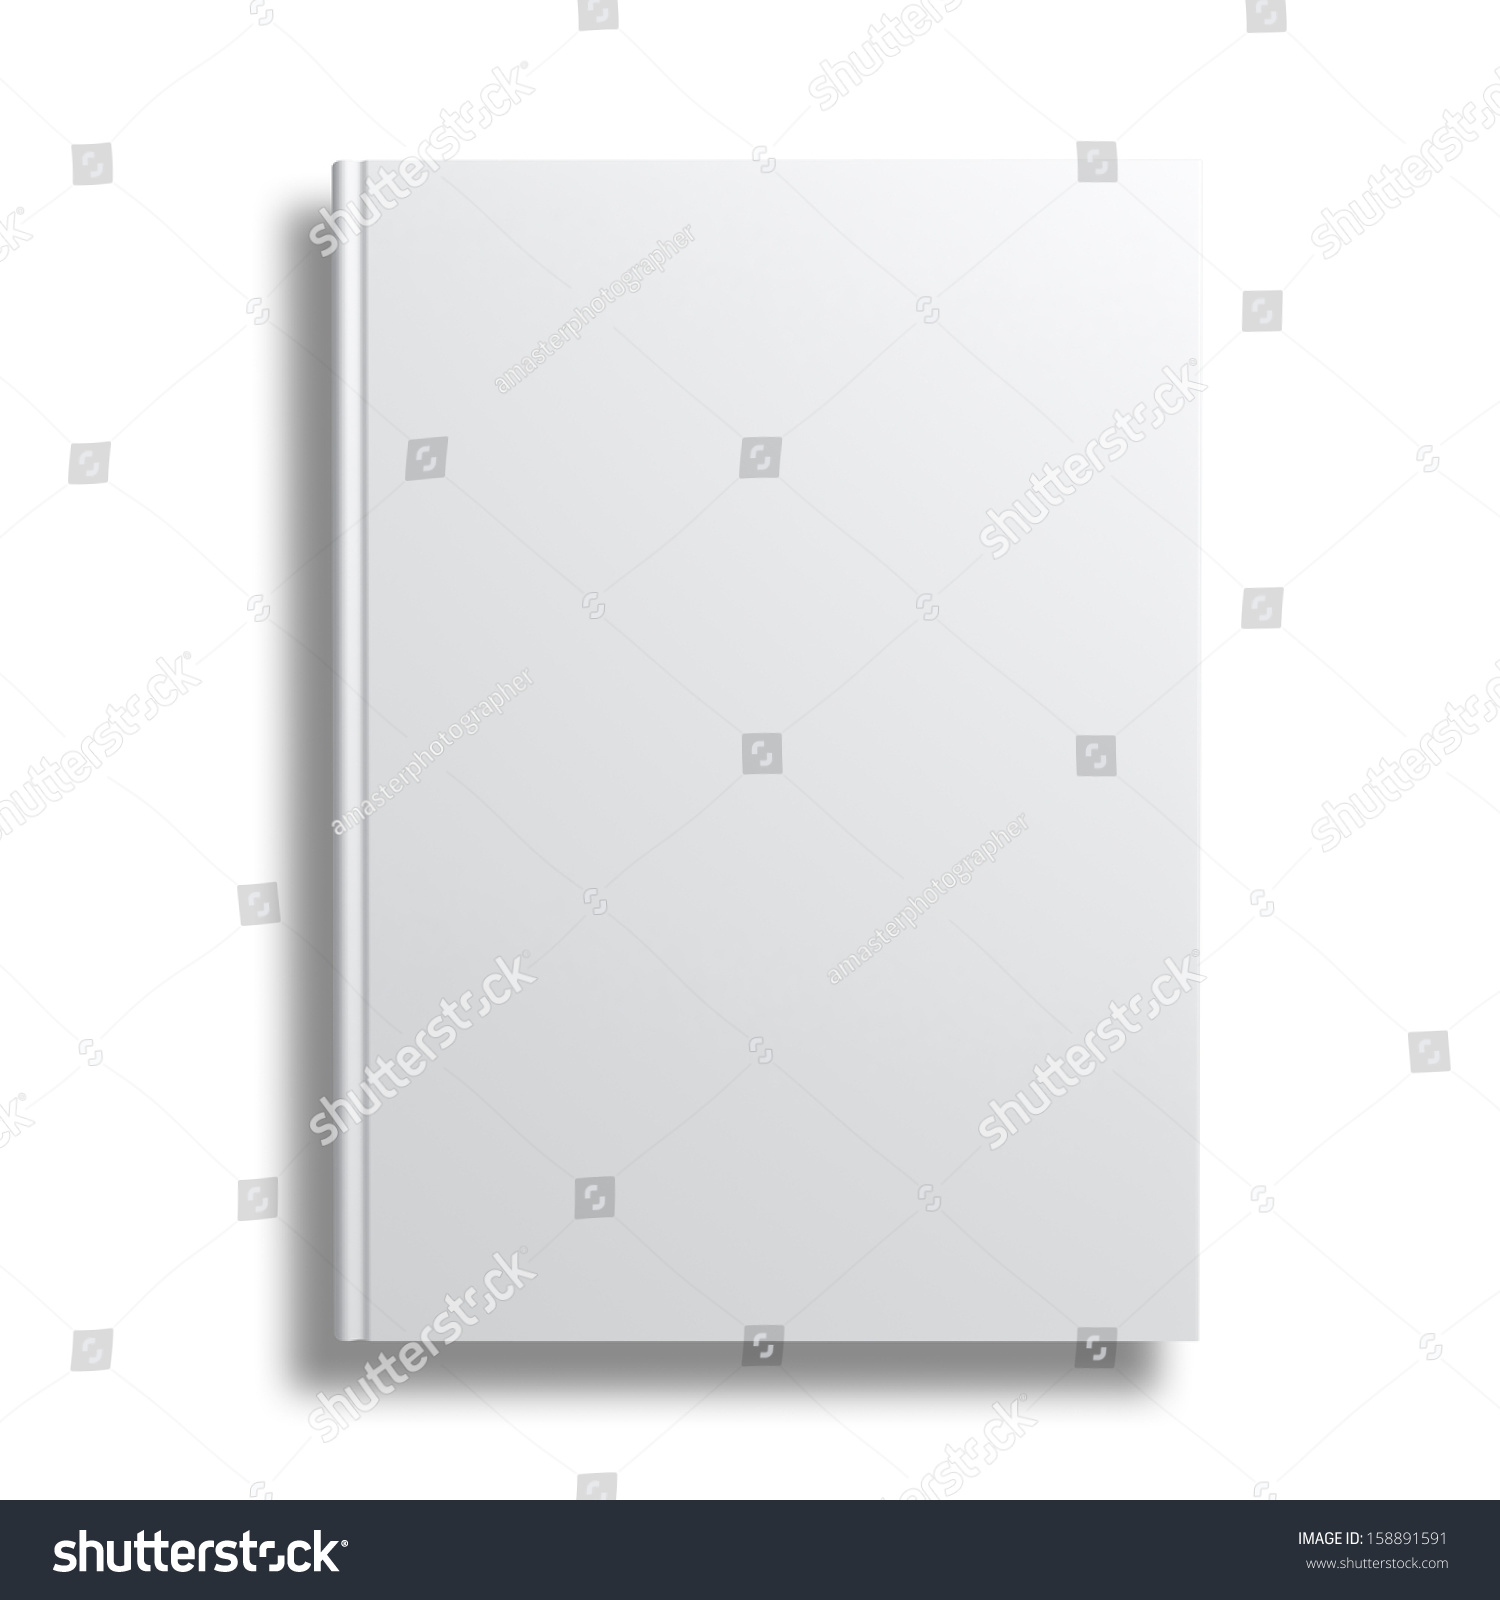 Book Cover White Background ~ Blank book cover isolated over white stock illustration